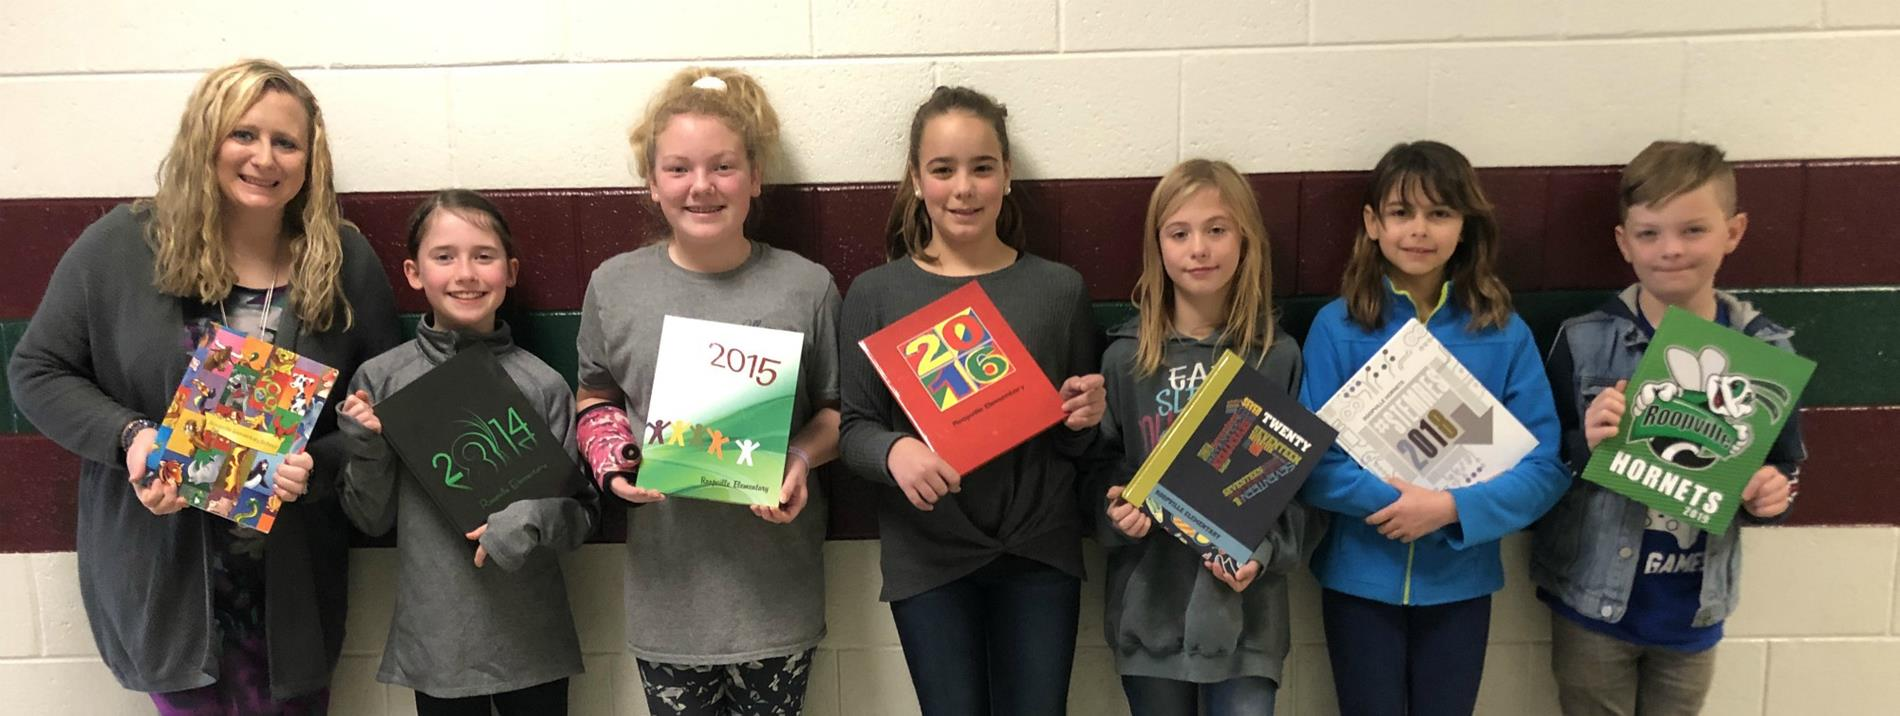 Yearbook Design Team holding past yearbooks